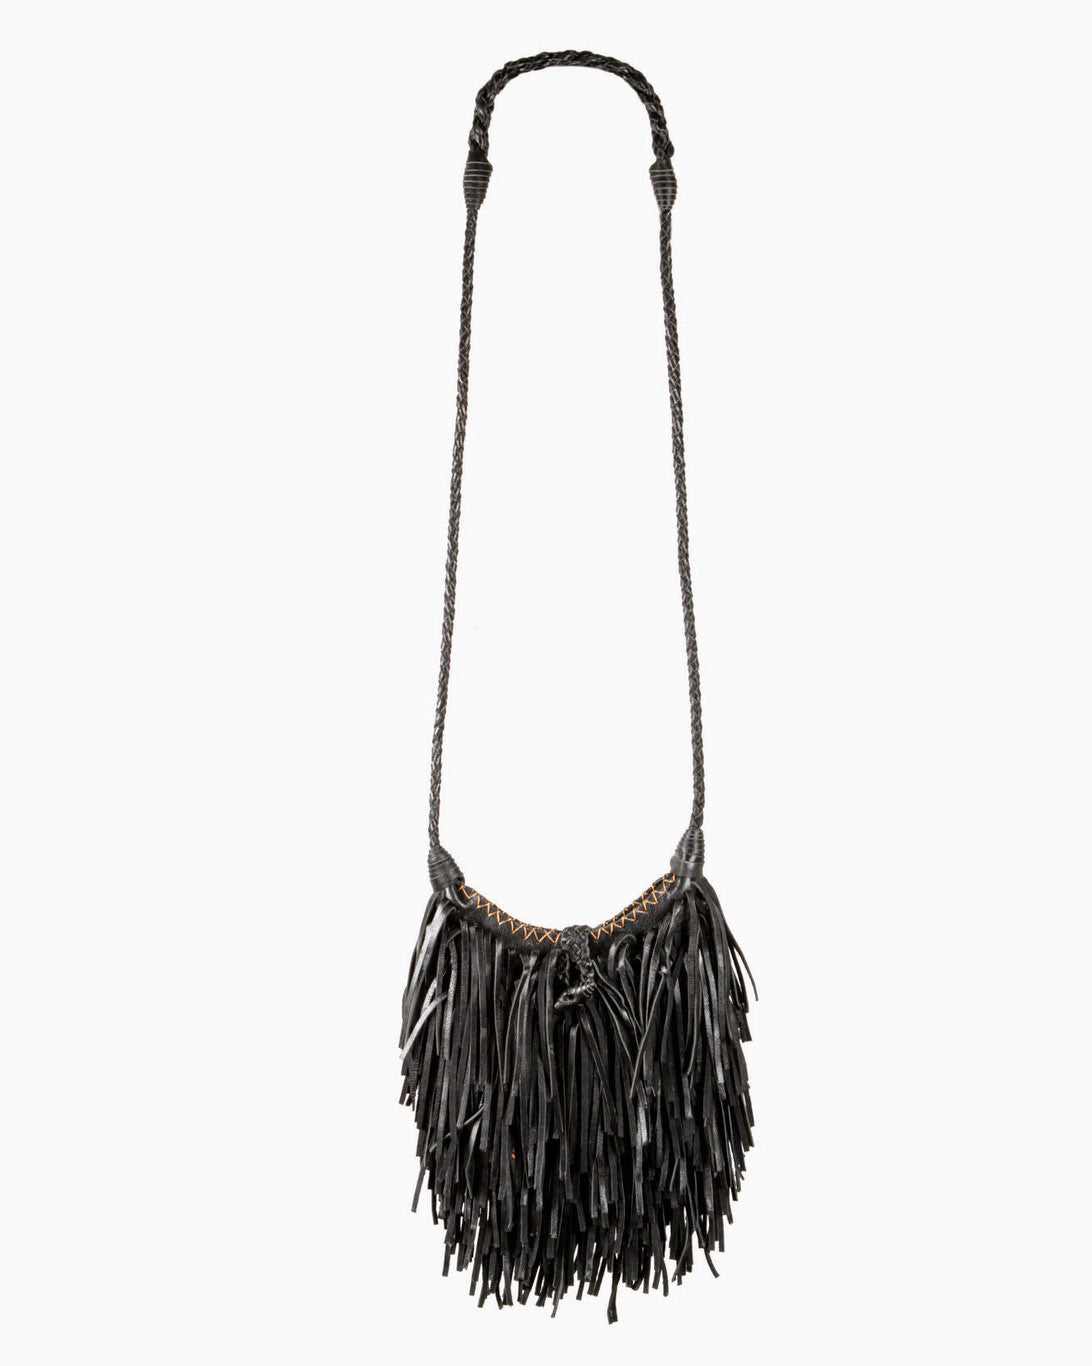 Poppy Fringe Leather Bag